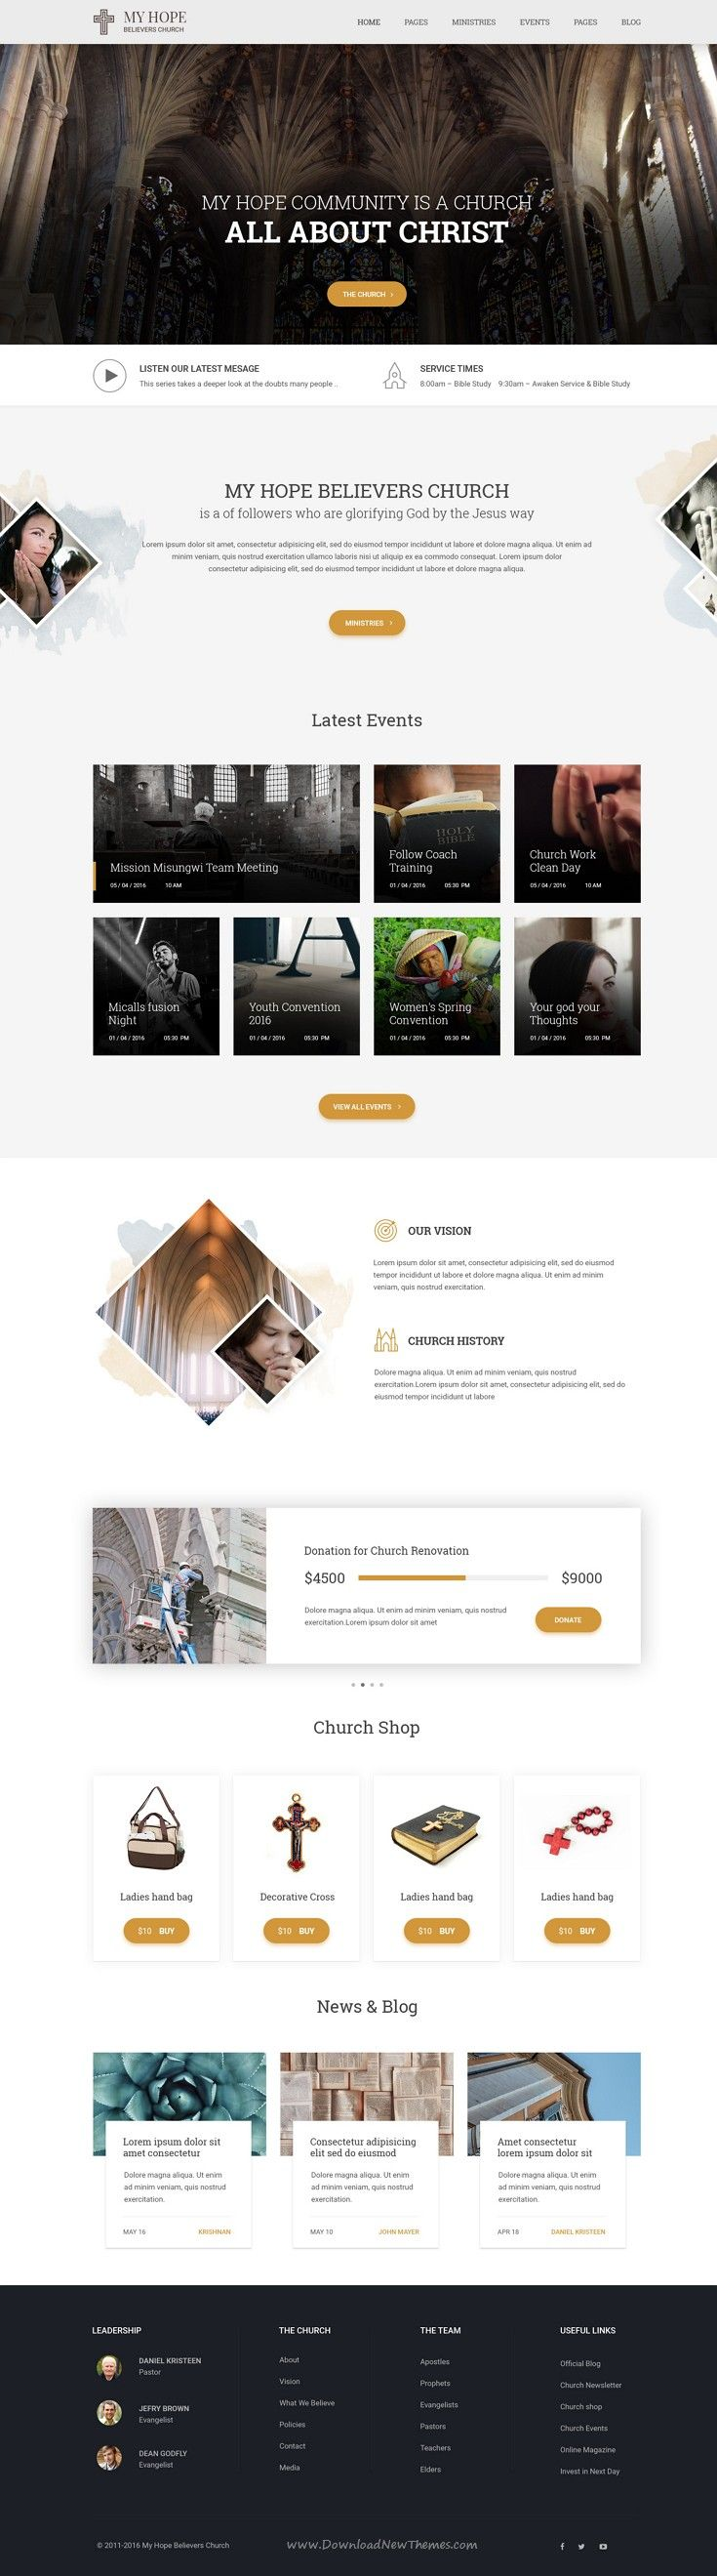 MY HOPE is wonderful PSD #template for #Church #website with two homepage variations and a total of 21 pages included. Download Now!